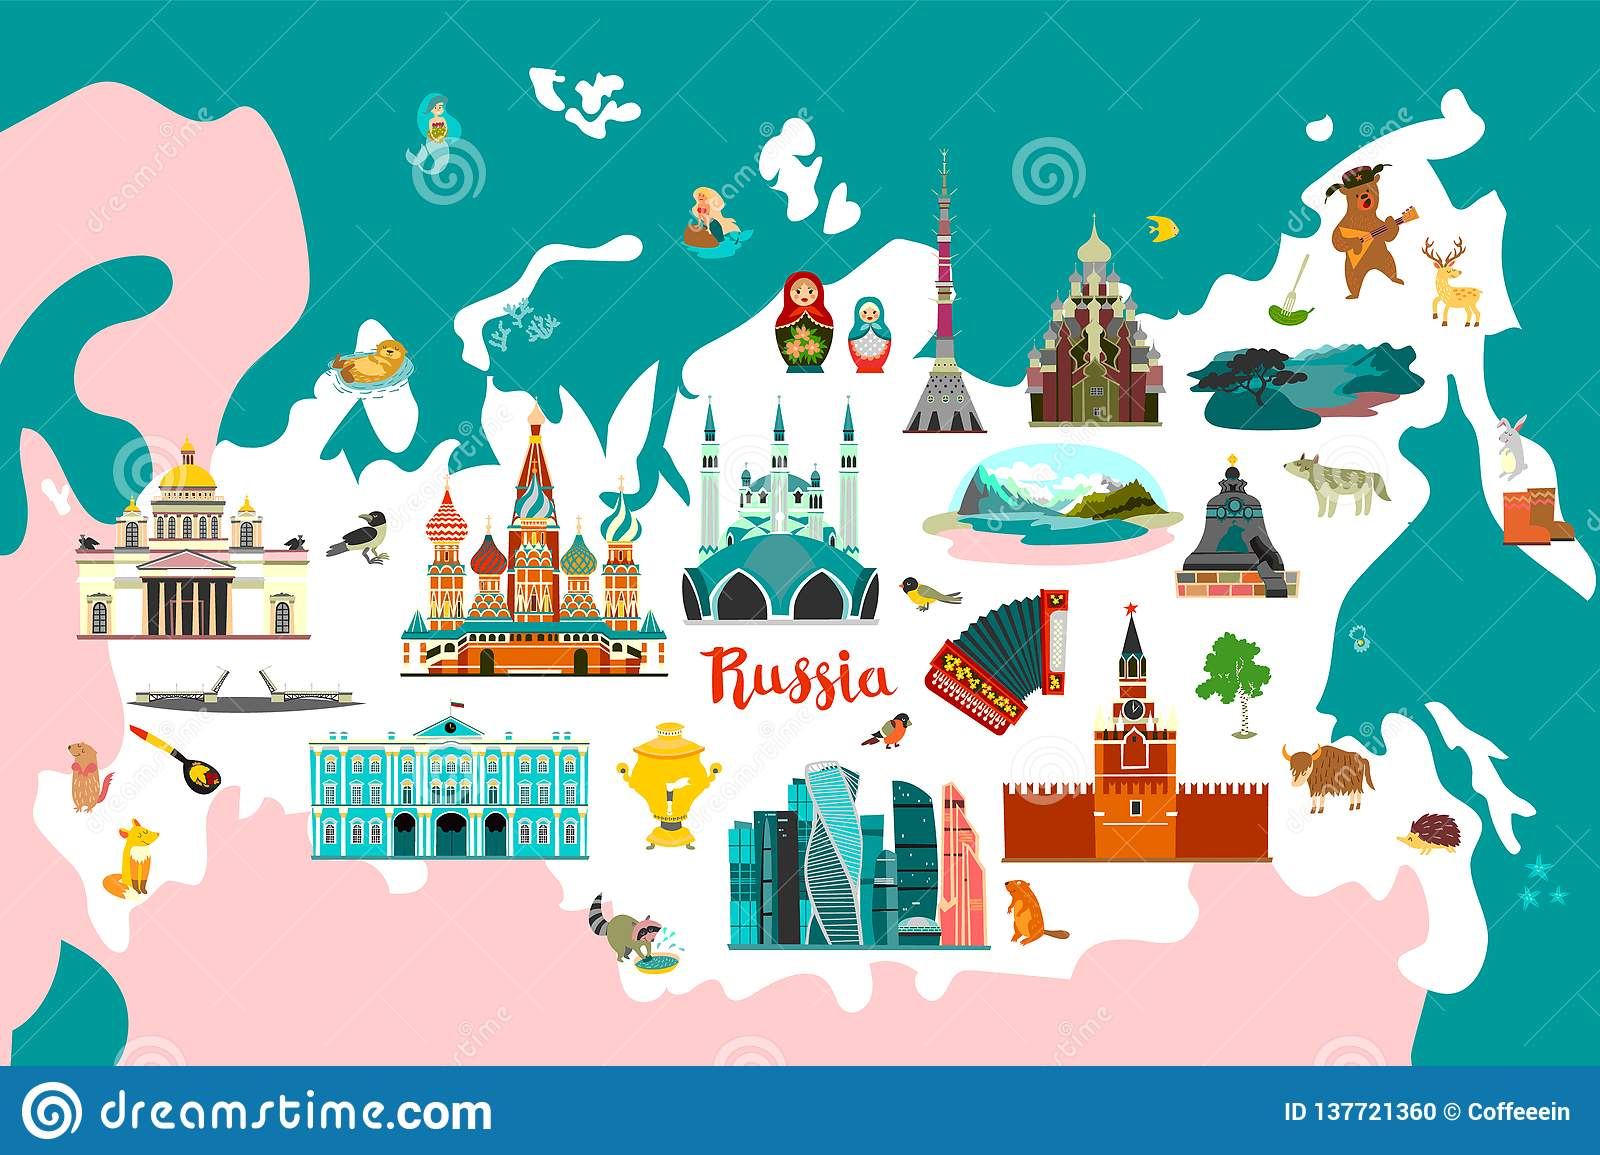 Russia Vector Atlas, Colorfull Illustration Stock Vector ... on flat united states map, flat eurasia map, flat great britain map, flat country map, flat europe map, flat us map, flat africa map, flat world maps,